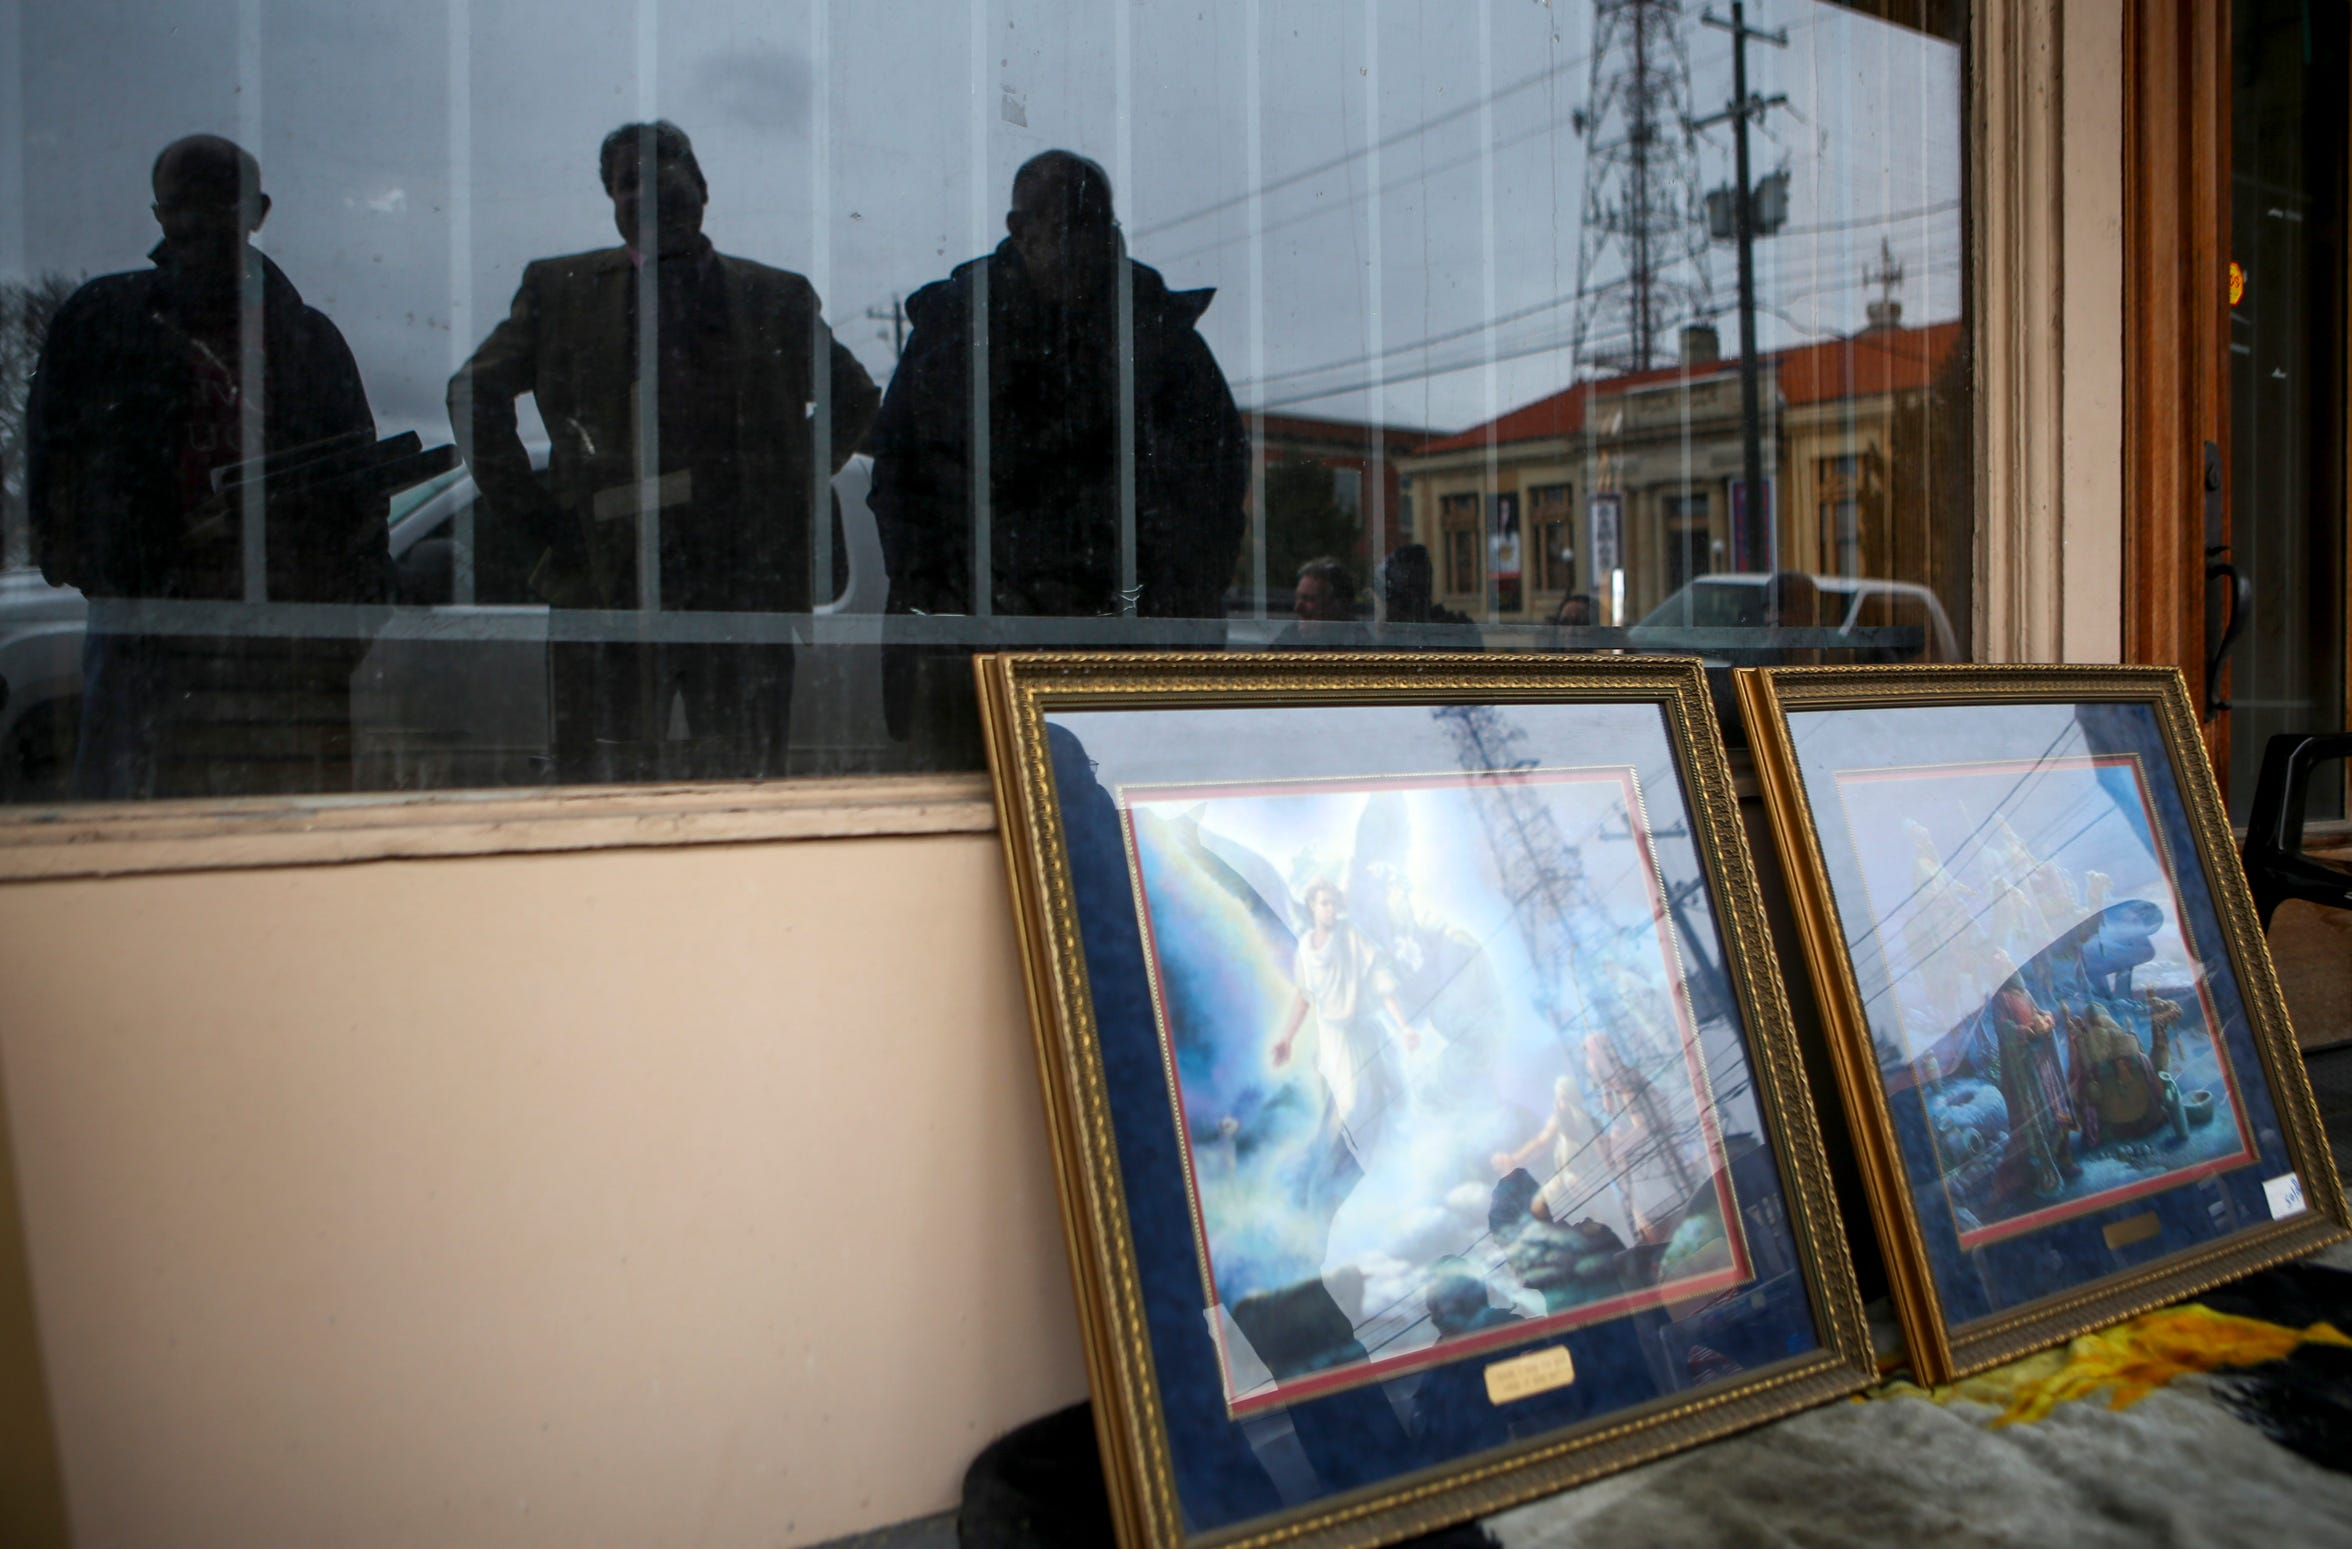 Pat Parham, left, brother Jerry, center, and brother Ben, right, reflected in a glass window, admire paintings Jerry brought for their Christmas service at the Church Without Walls at the intersection of Church and College in Jackson, Tenn., on Sunday, Dec. 23, 2018.